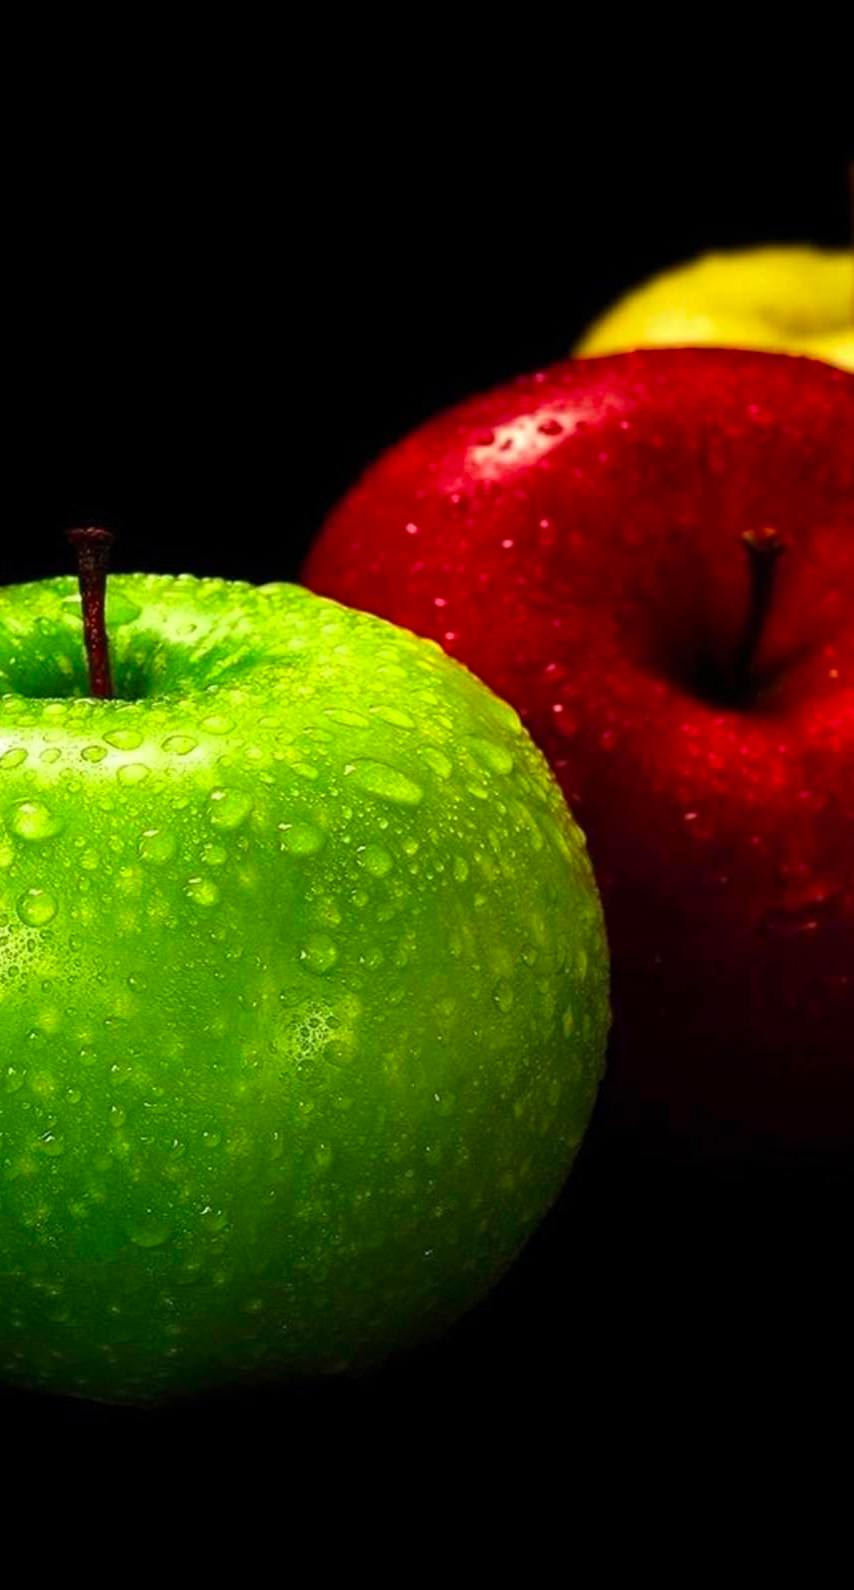 Apple Green Red Yellow Black Cool Wallpaper Sc Iphone7